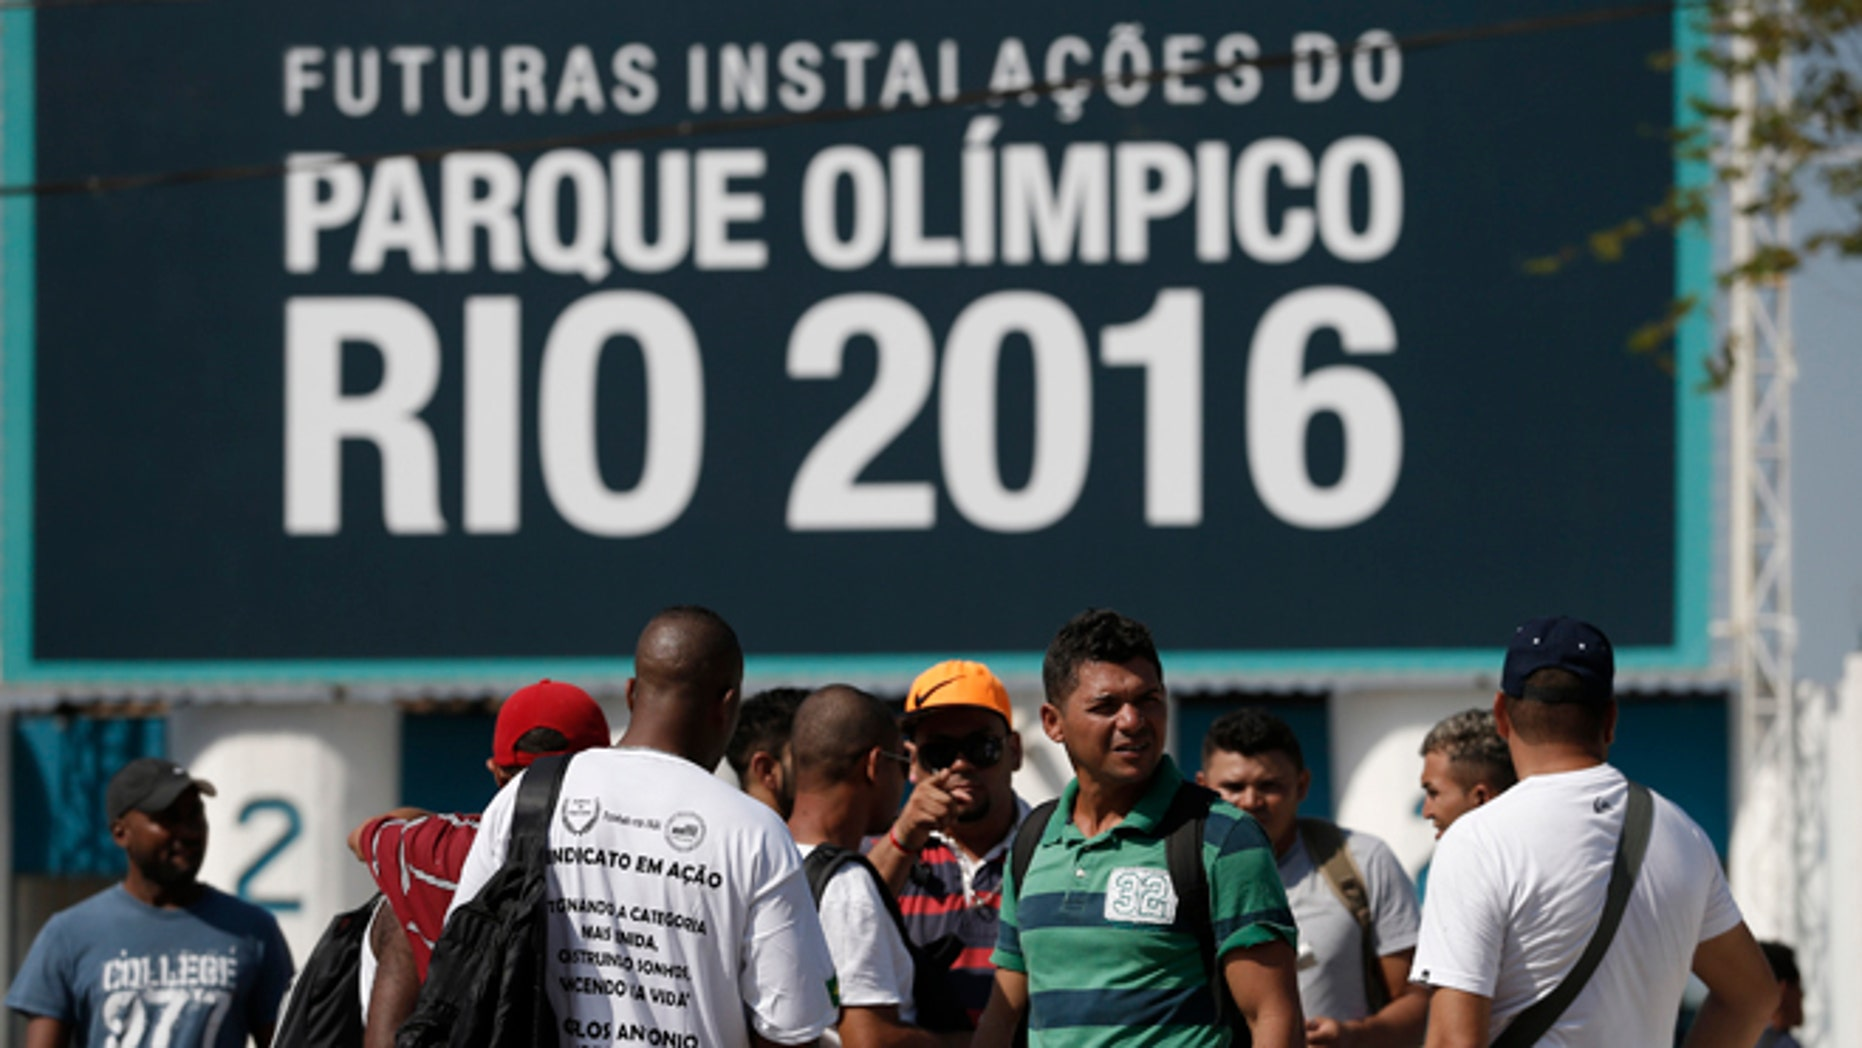 Striking workers stand in front the entrance of the Olympic Park, the main cluster of venues under construction for the 2016 Summer Olympic Games, in Rio de Janeiro, Brazil, Tuesday, April 8, 2014. The labor dispute centers around which union represents the construction workers, and also involves benefits and working conditions. (AP Photo/Silvia Izquierdo)